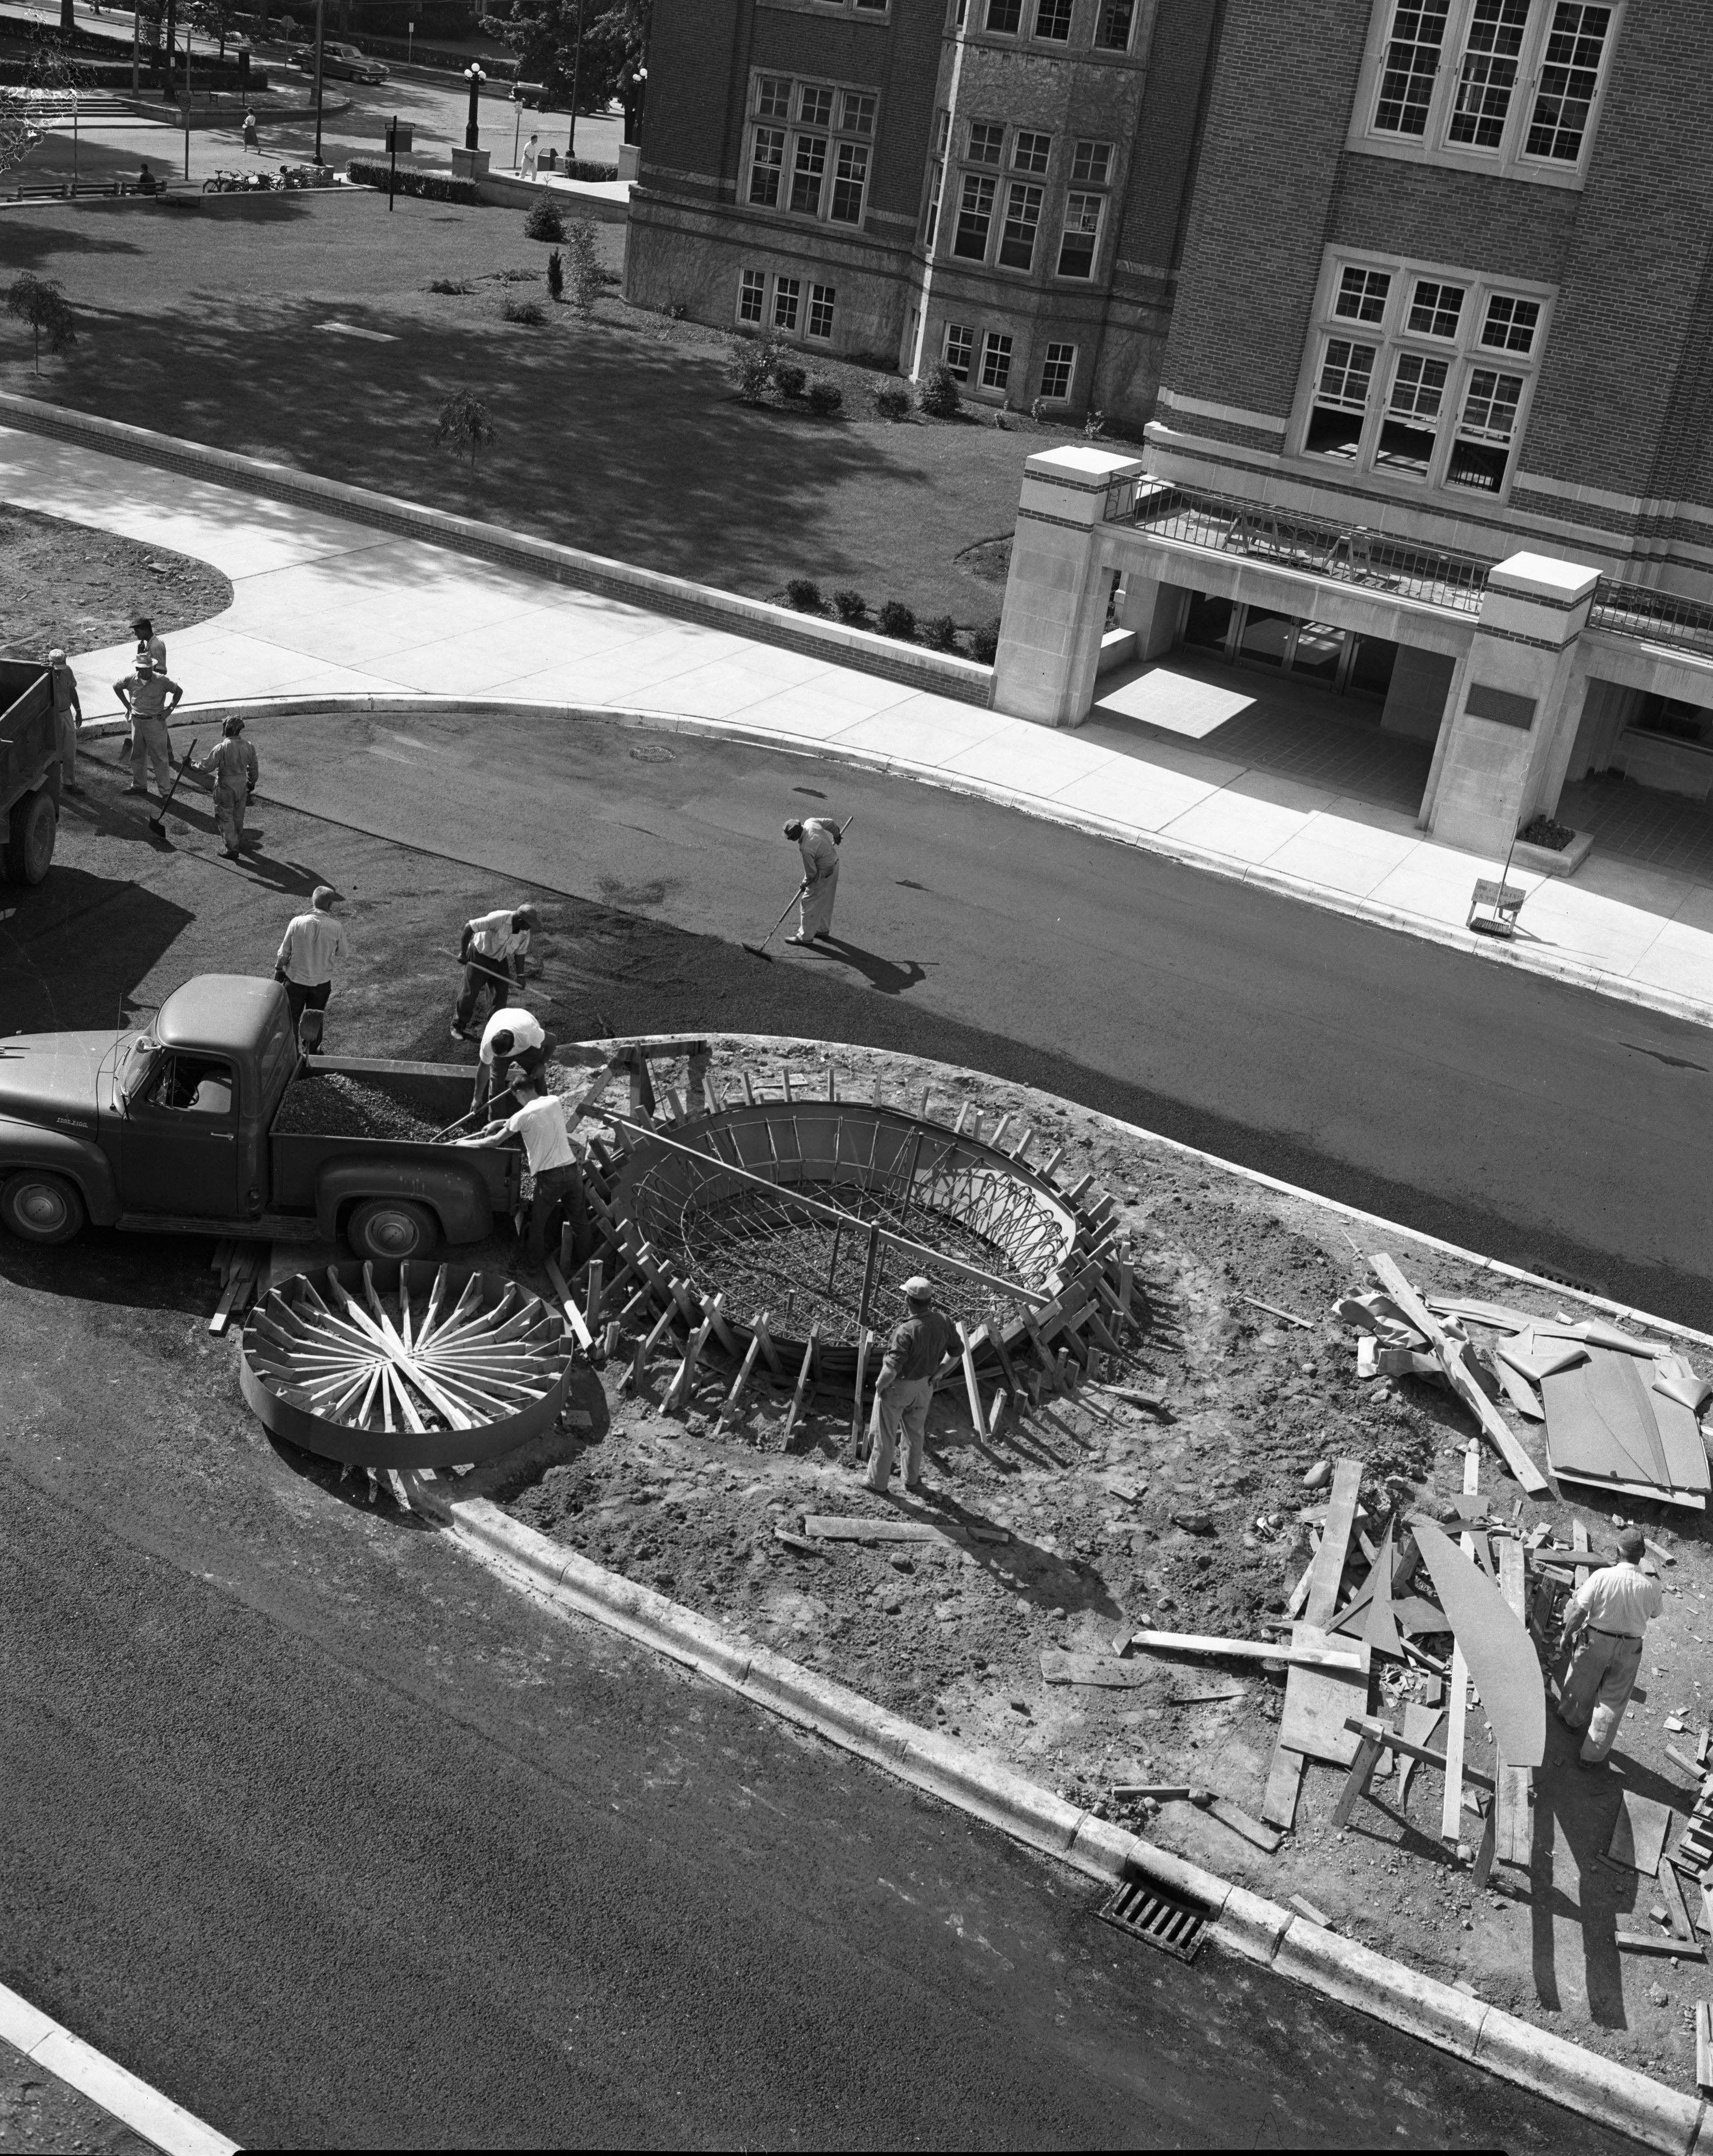 Michigan Union gets a fountain representing the atomic age, June 1956 image